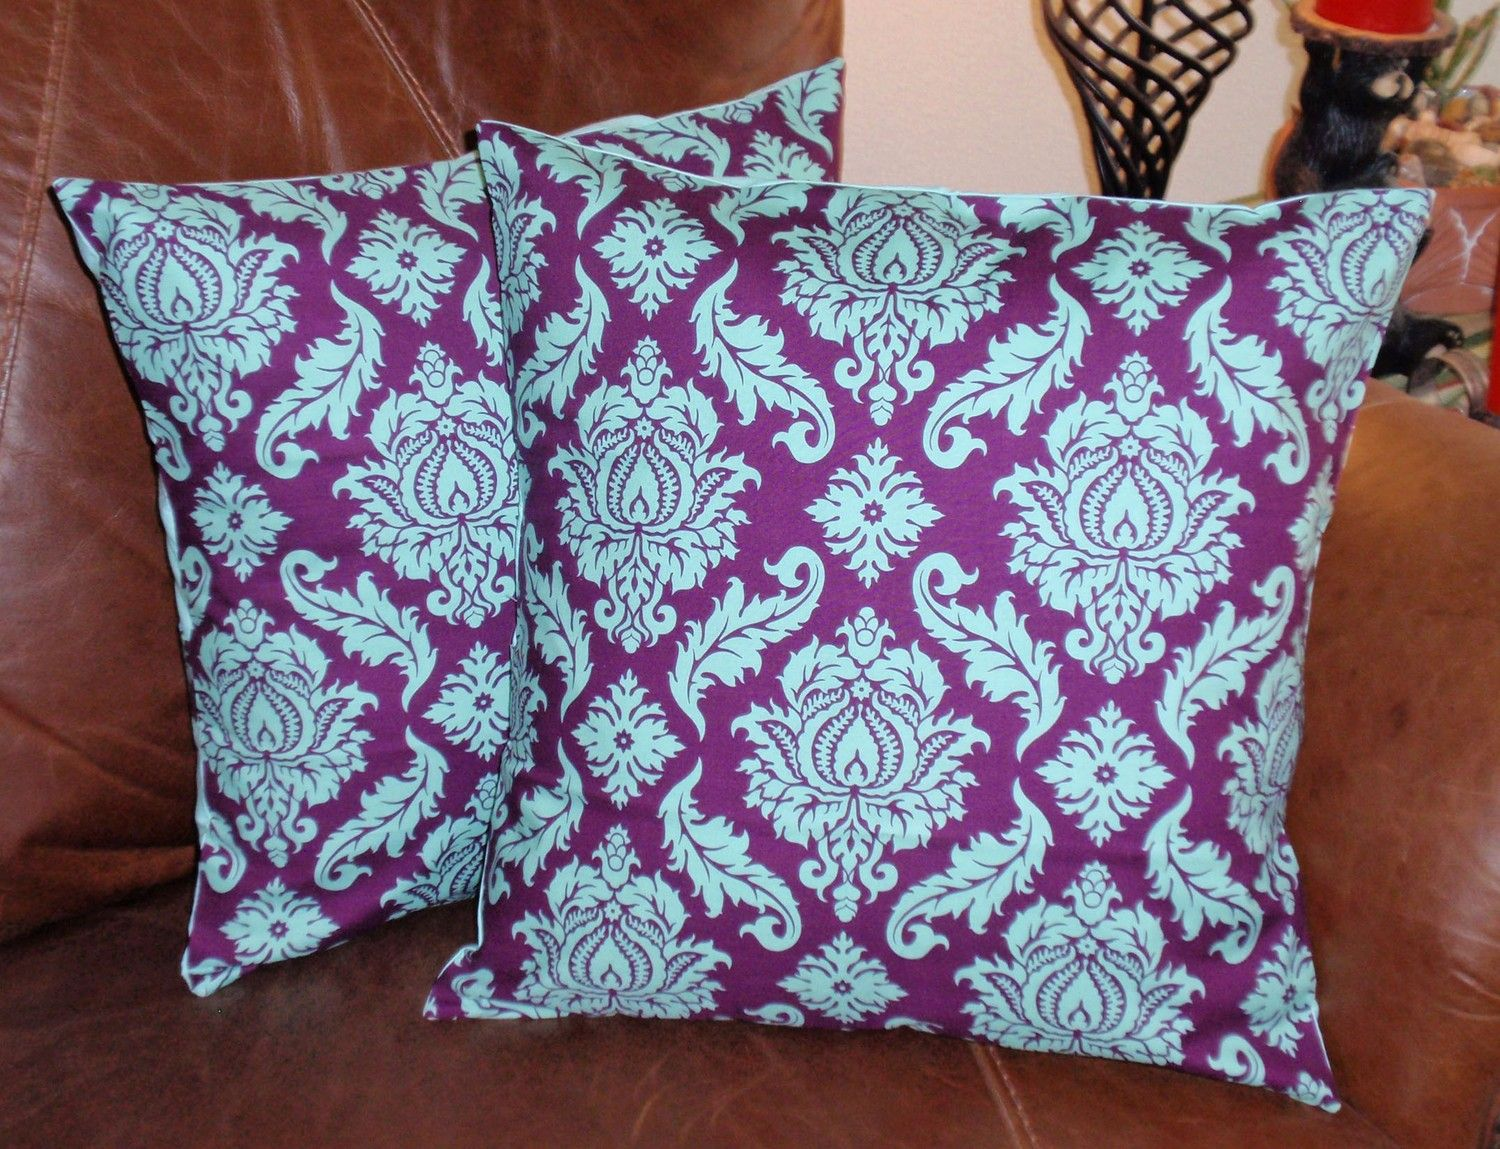 Throw Pillow Covers - 18x18 Set of 18 sewn with Joel Dewberrys ...